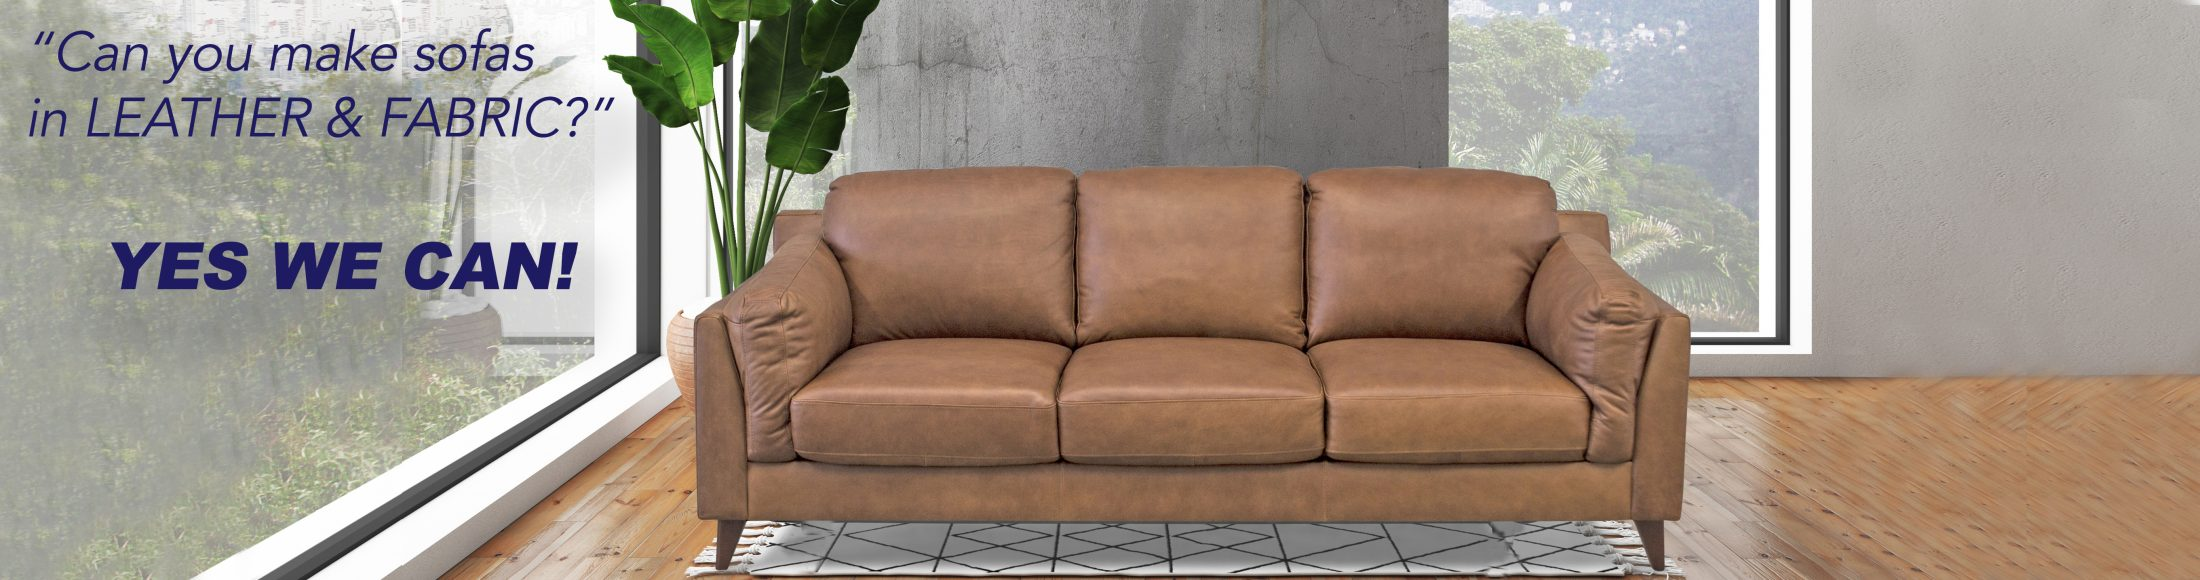 We made sofas in fabric & leather!